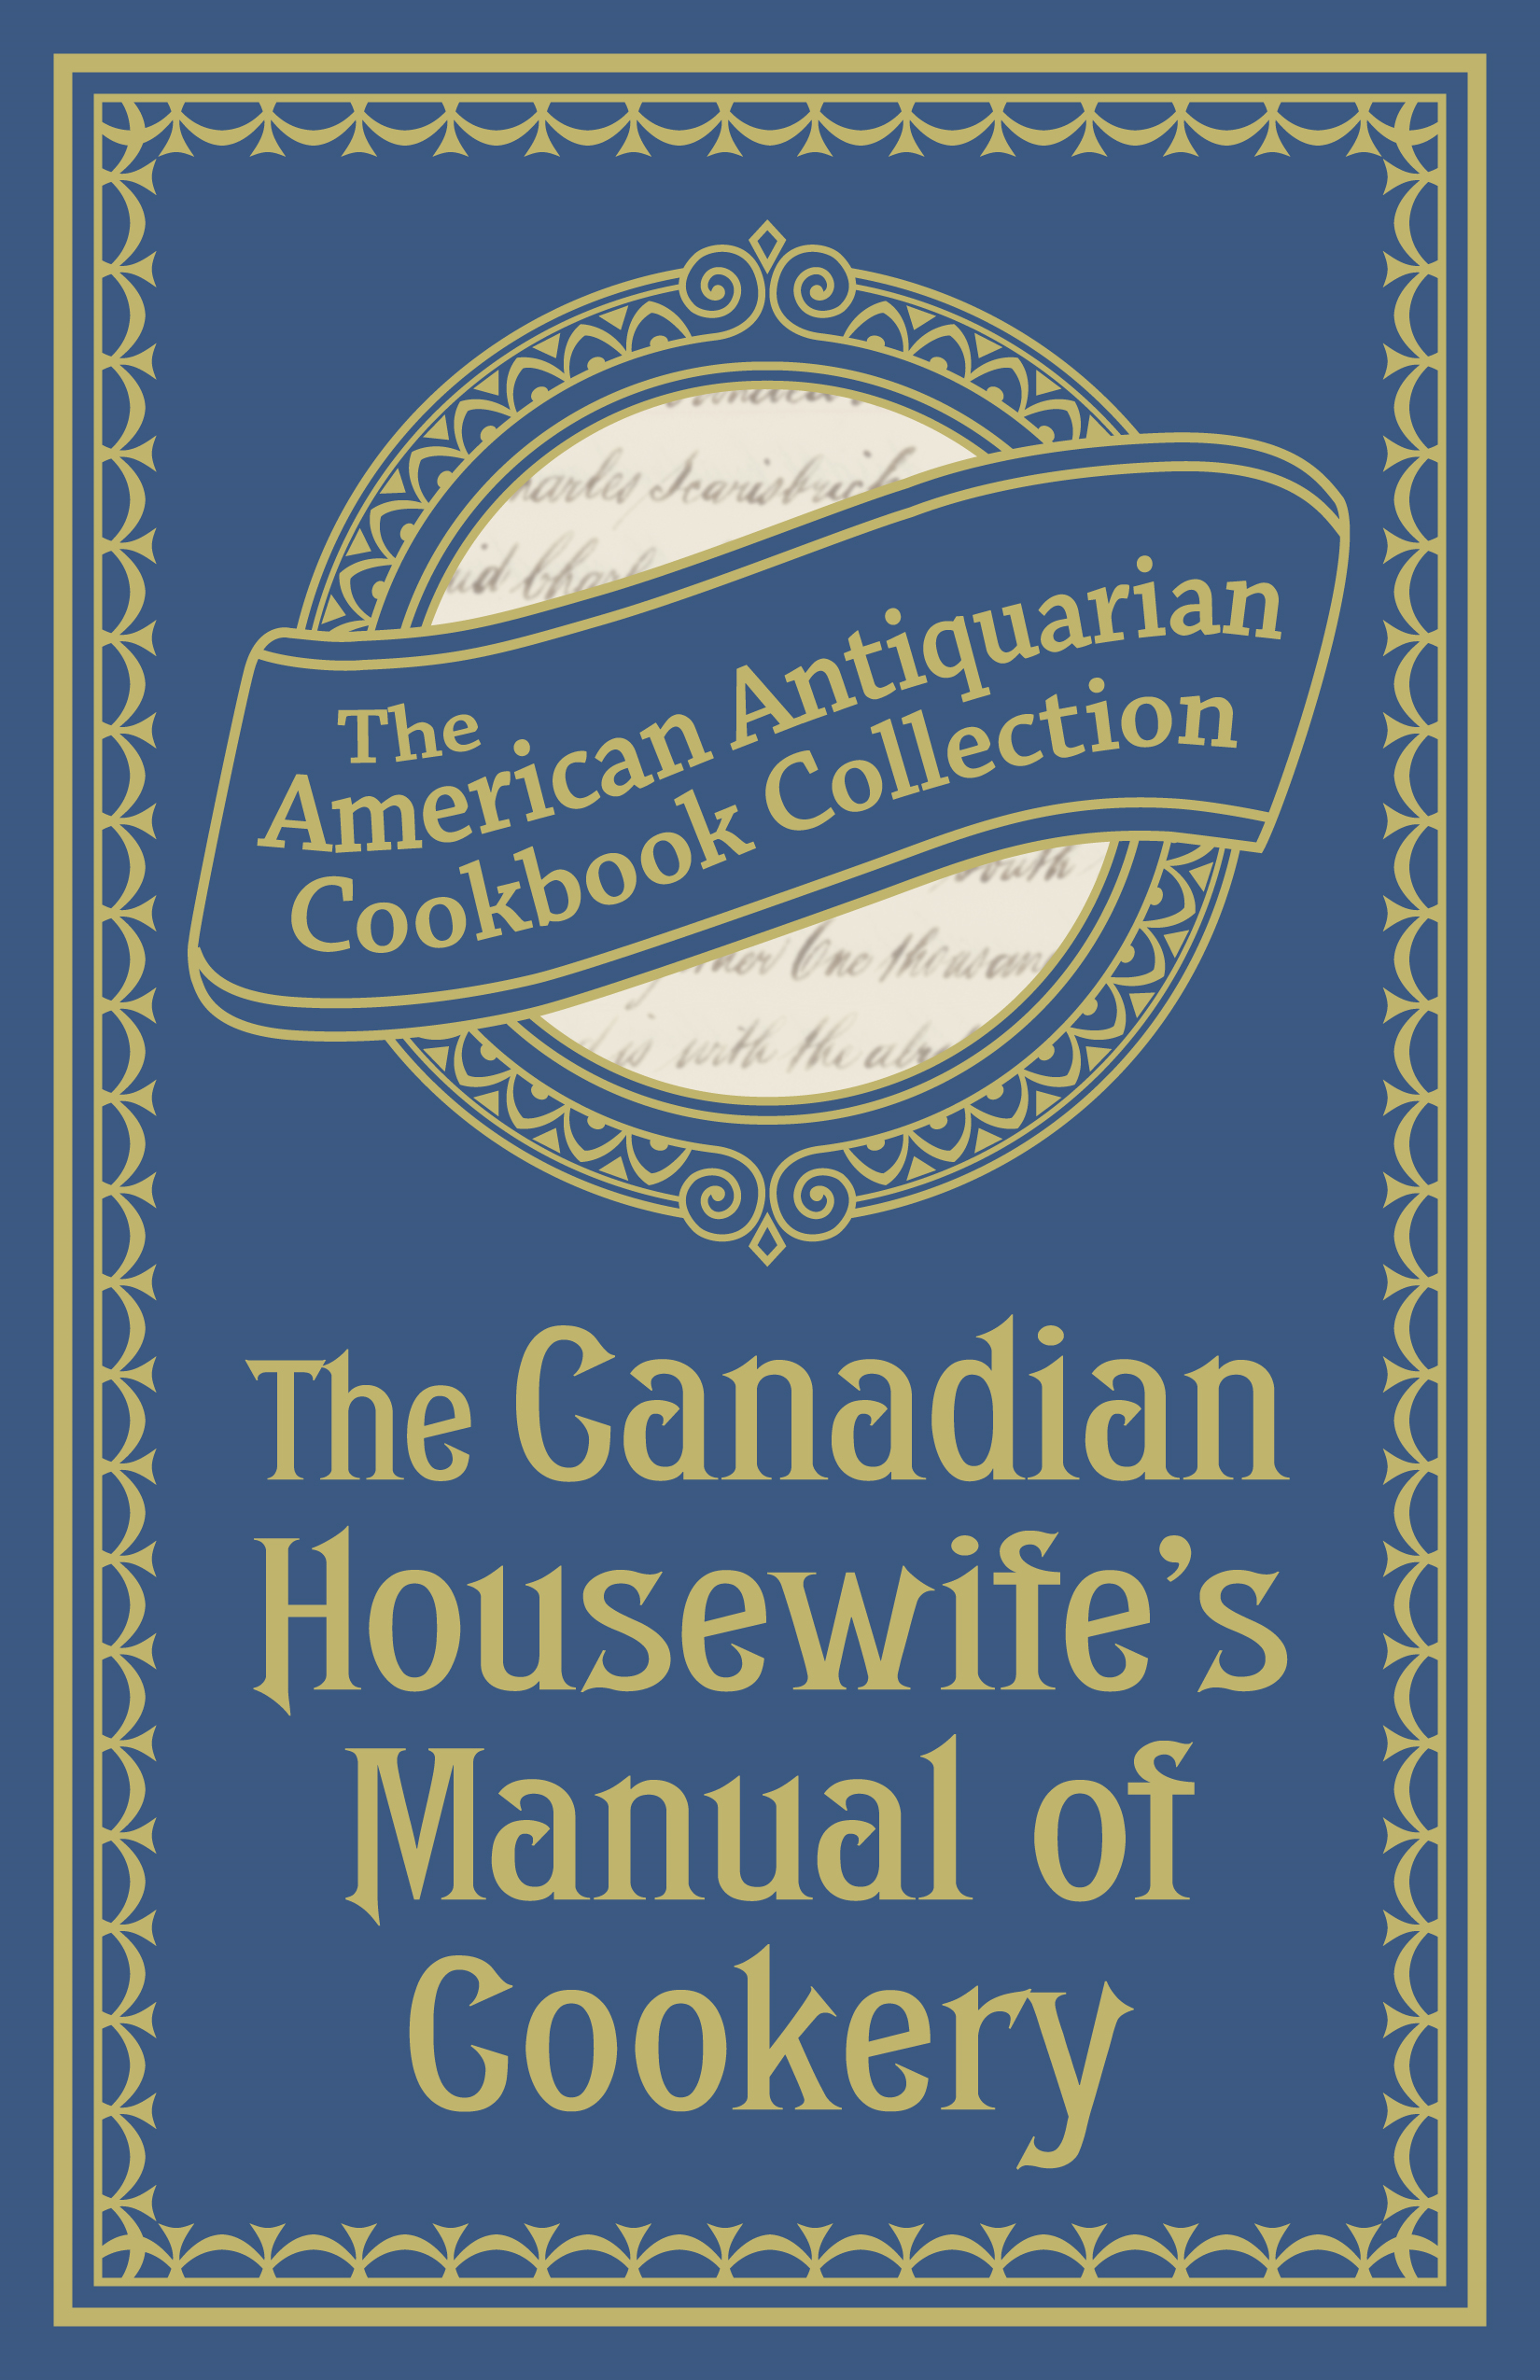 Canadian Housewife's Manual of Cookery By: The American Antiquarian Cookbook Collection